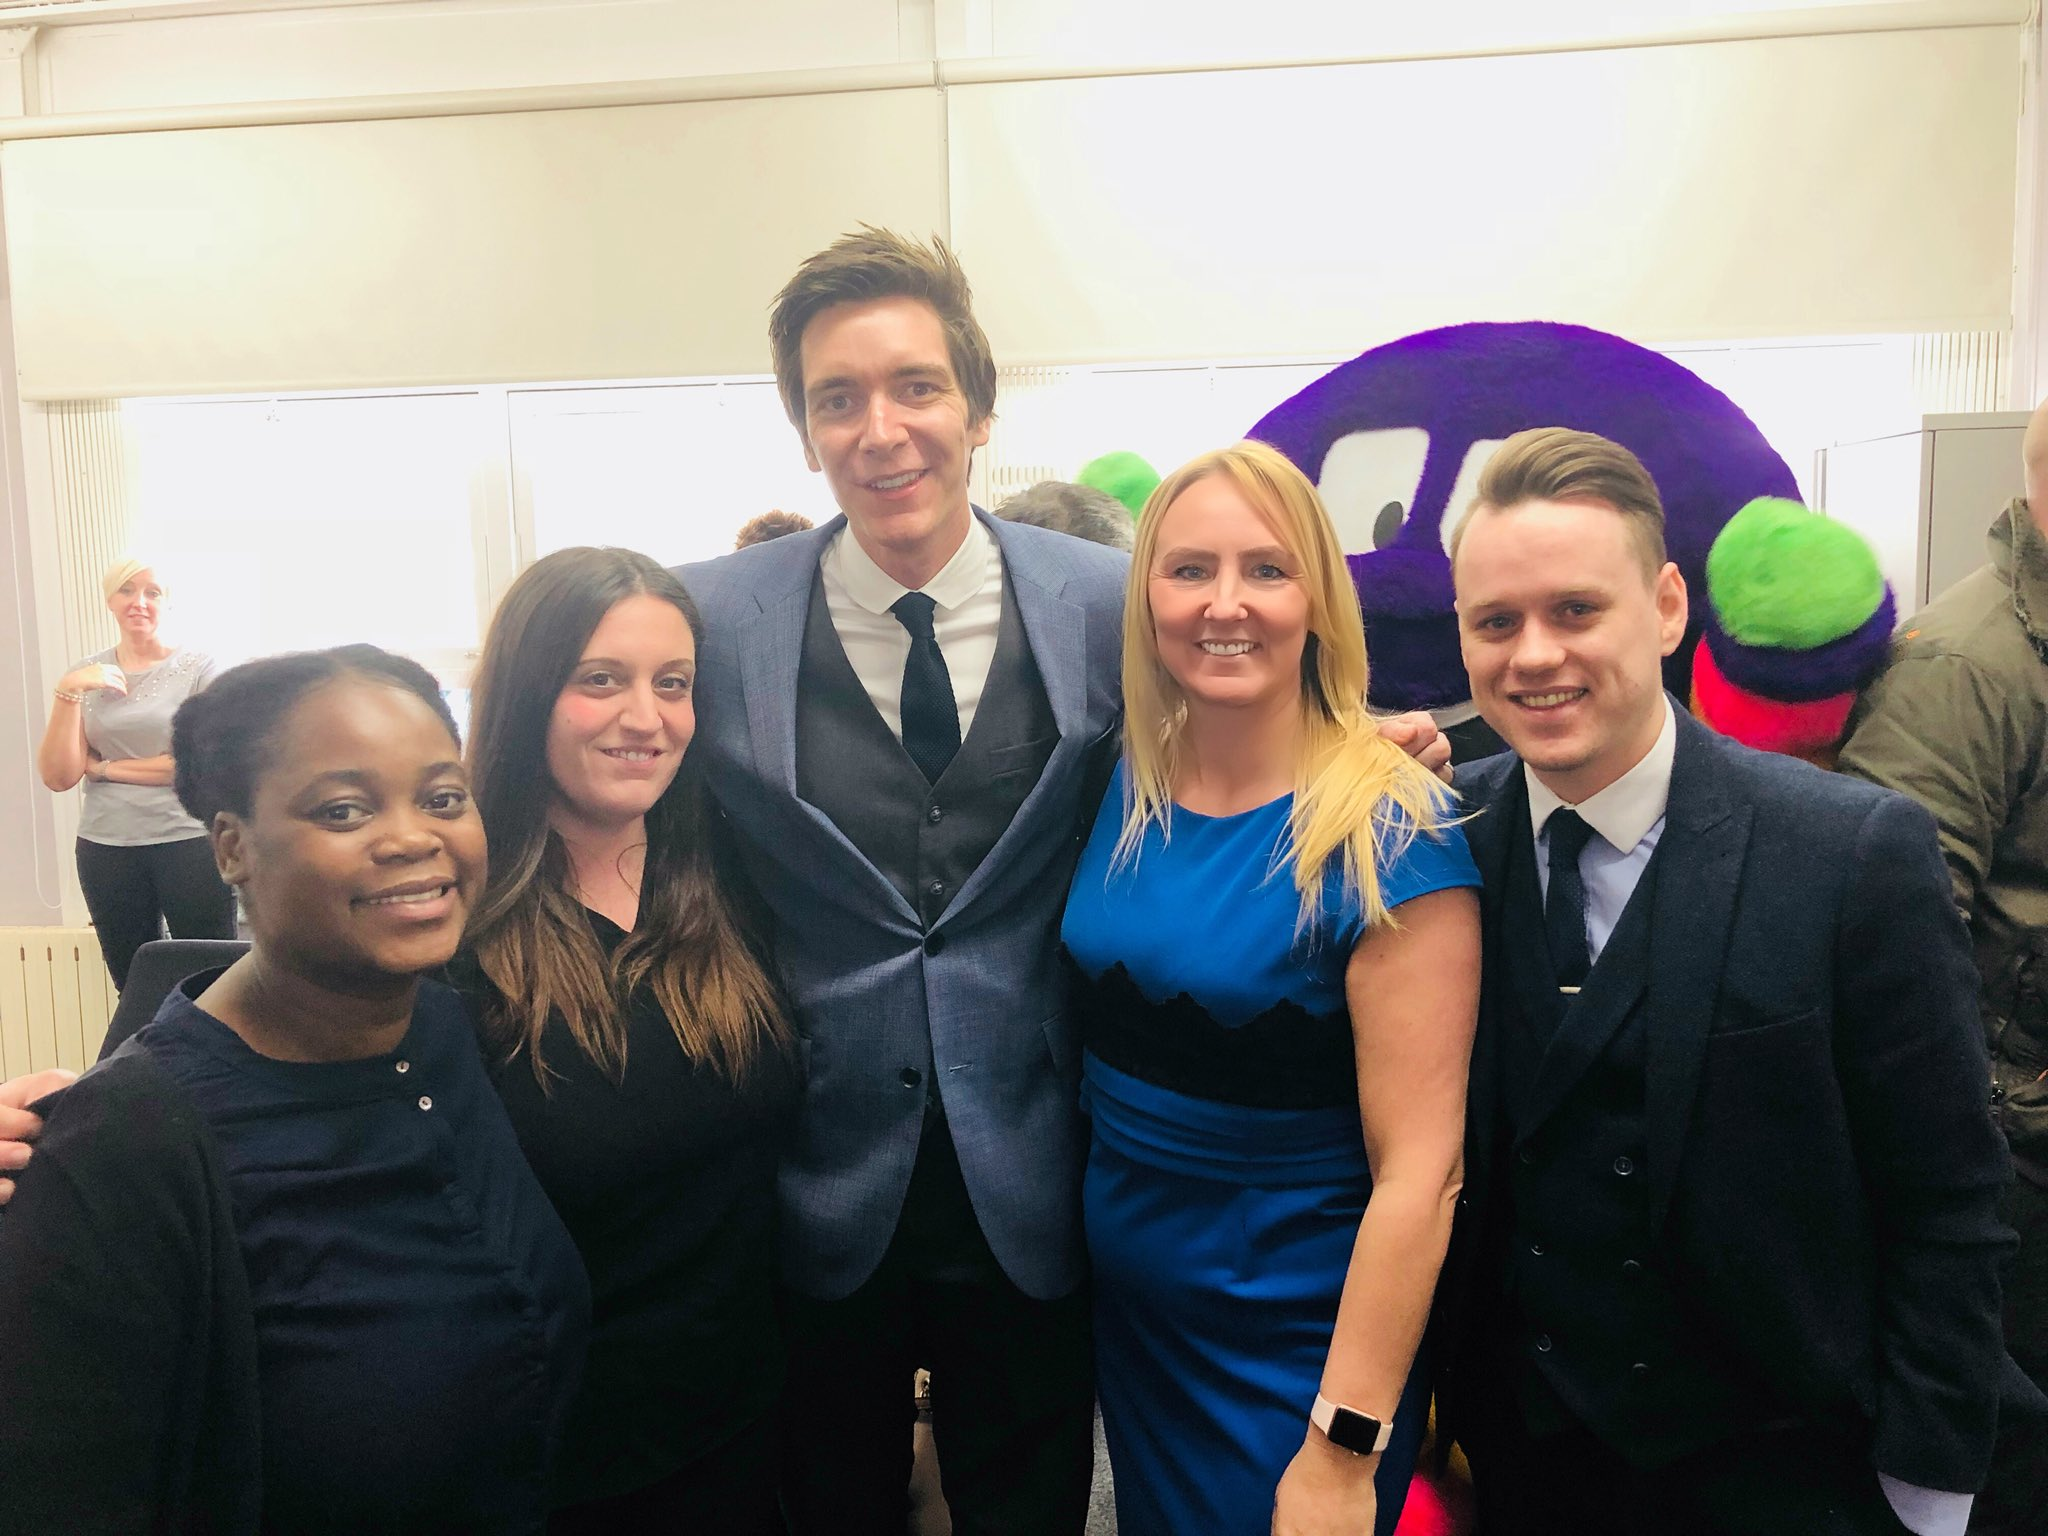 Great to see @James_Phelps at the #hhho Cancer Centre opening @harry_moseley @Sarah_J_Duggan https://t.co/ZR0oYsSOng